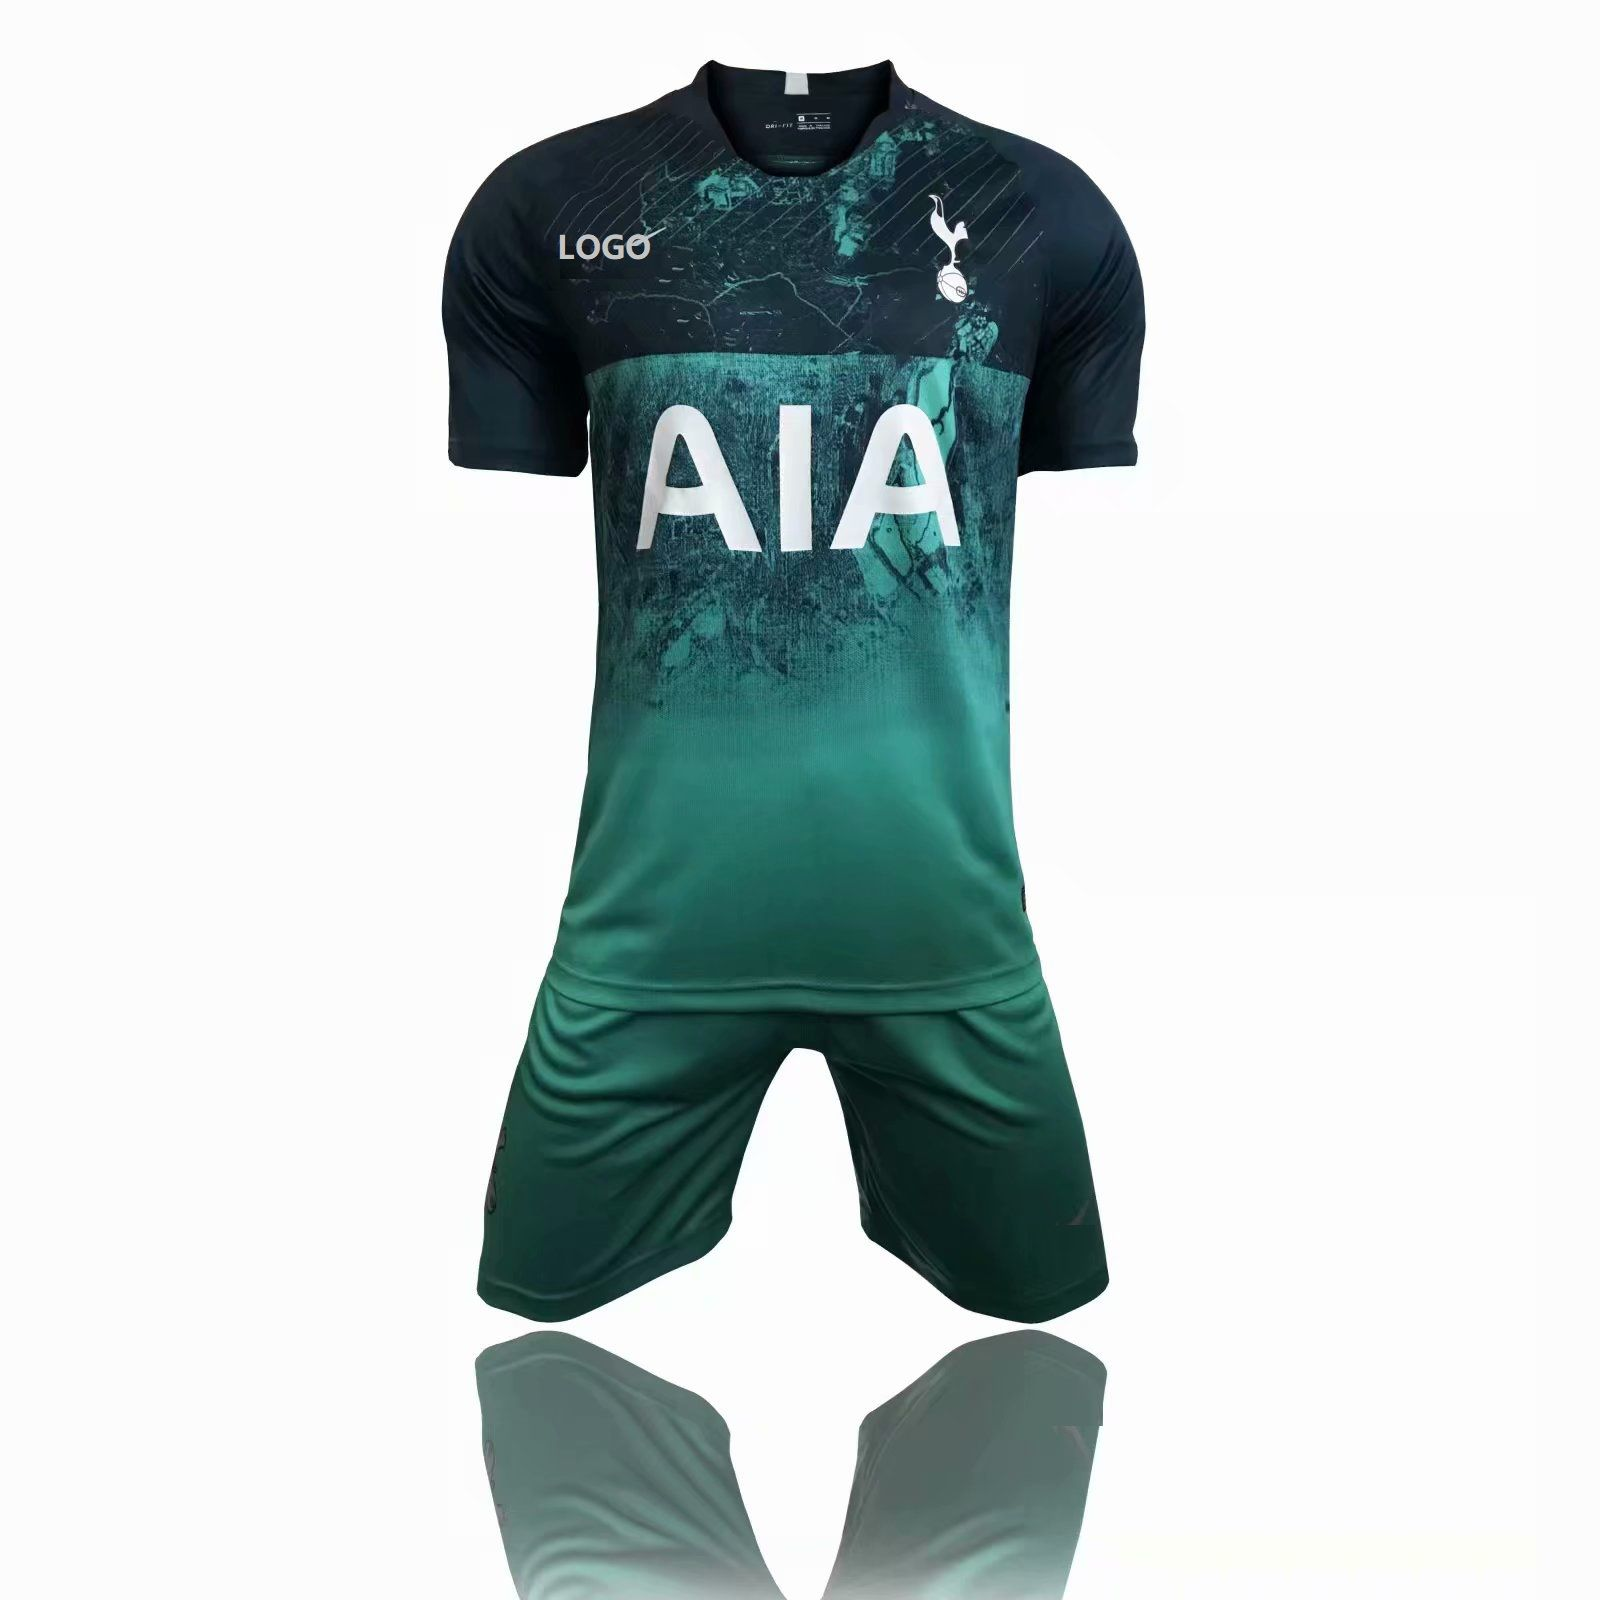 faa06f3d 2018/19 Adult Hotspur Green Third Away Soccer Jersey Uniform Men 3rd  Football Kits Custom Name Number